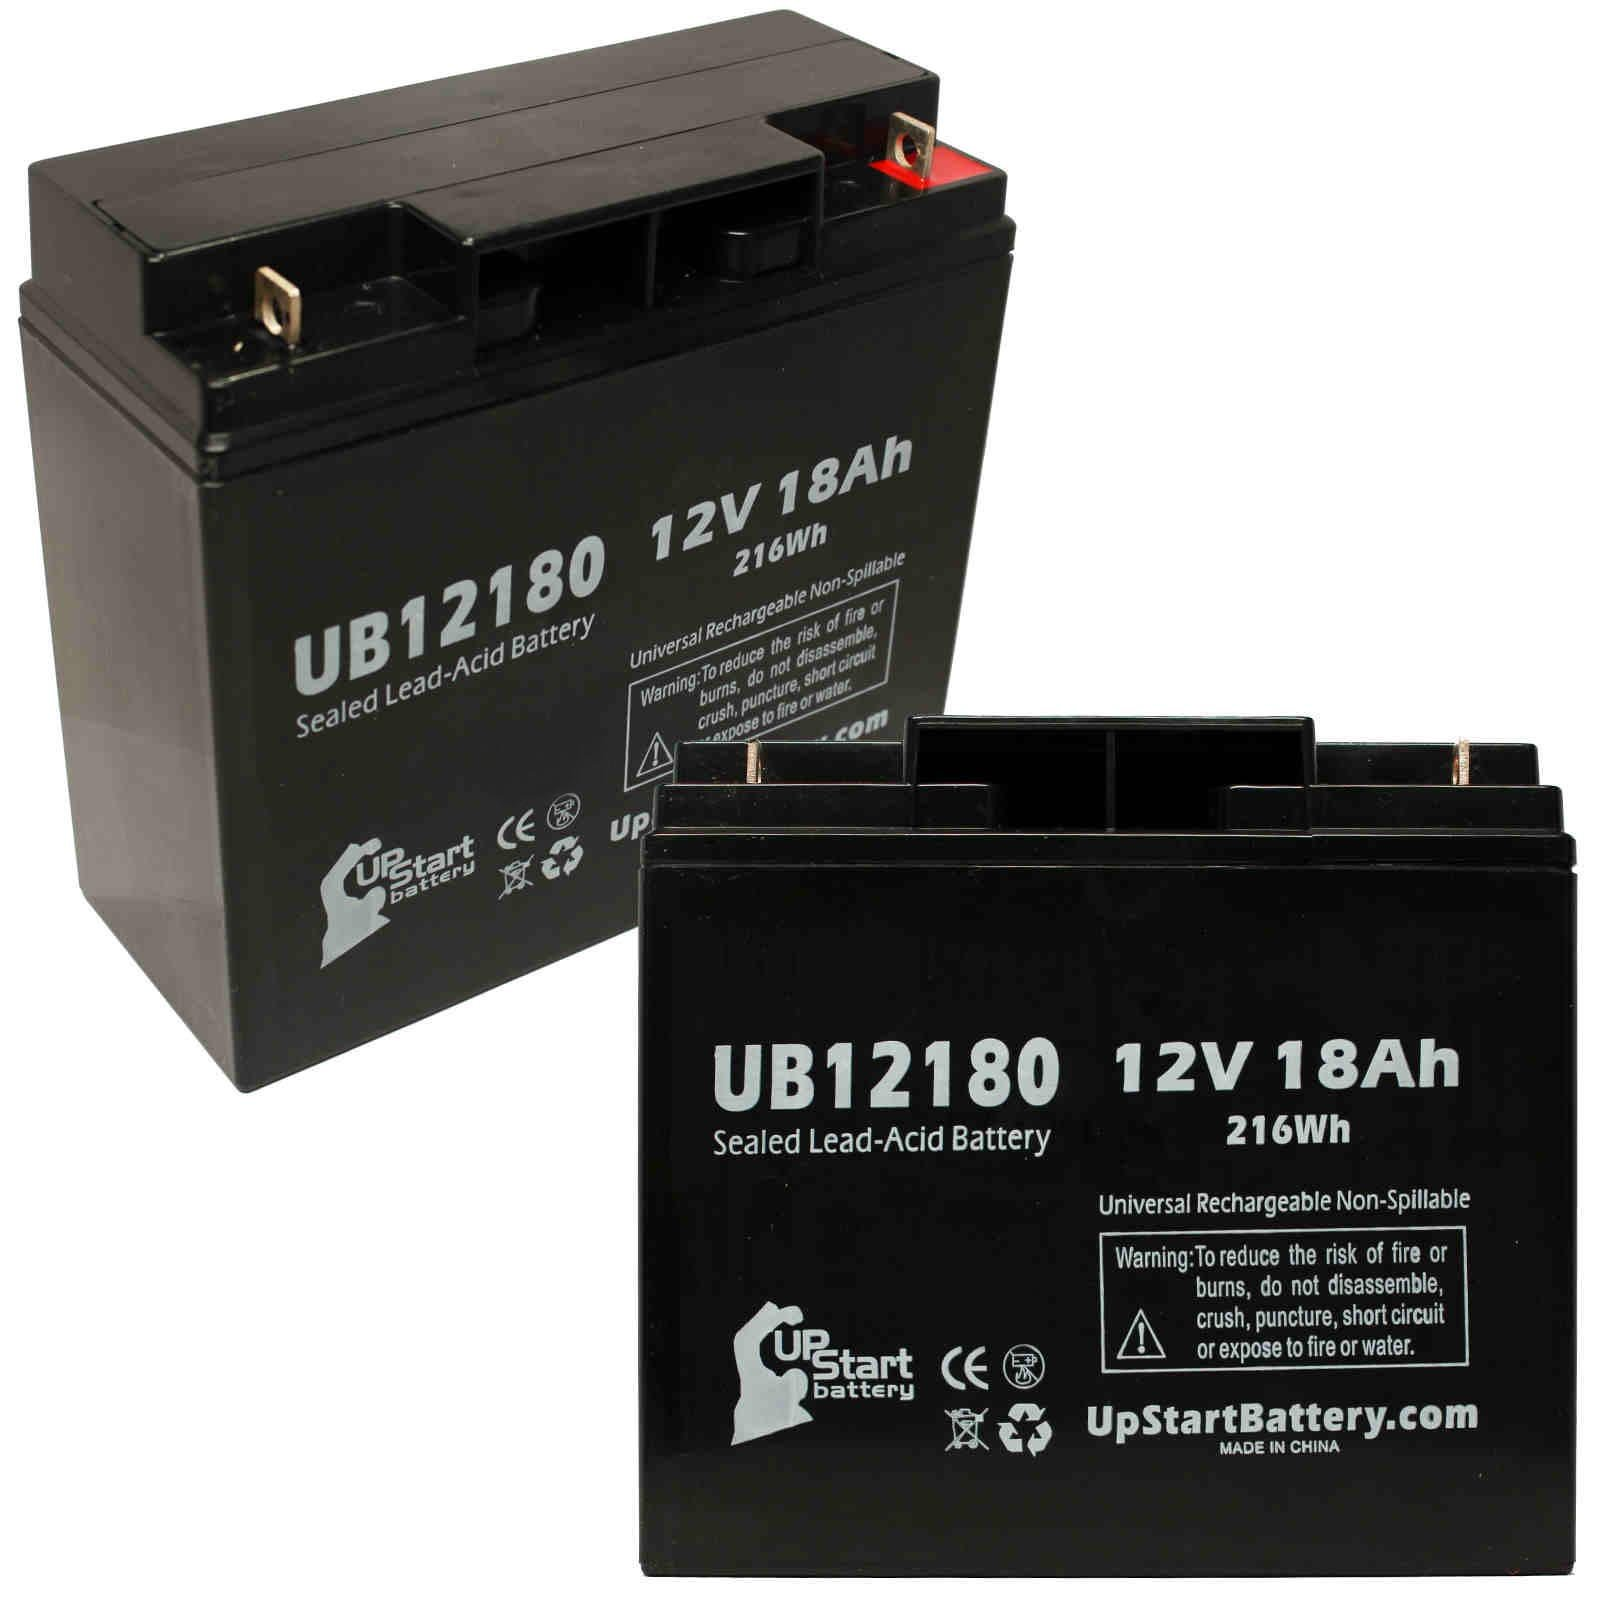 2 Pack Replacement for Pride Gogo Elite Traveler Plus Battery - Replacement UB12180 Universal Sealed Lead Acid Battery (12V, 18Ah, 18000mAh, T4 Terminal, AGM, SLA) by UpStart Battery